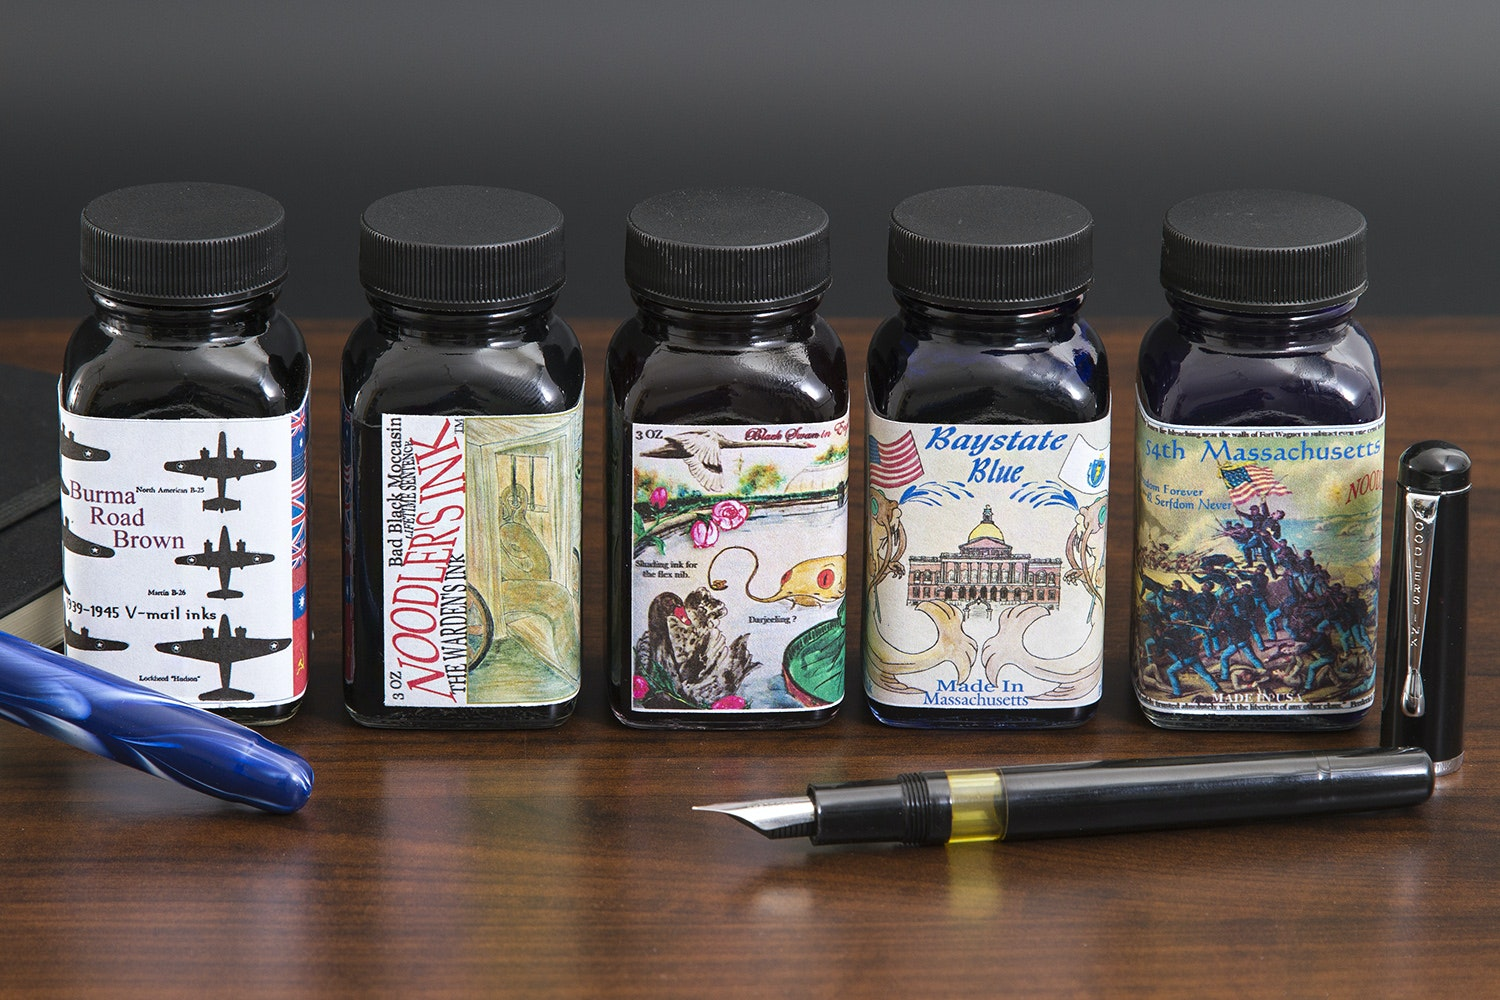 Noodler's Ink & Pen Bundle